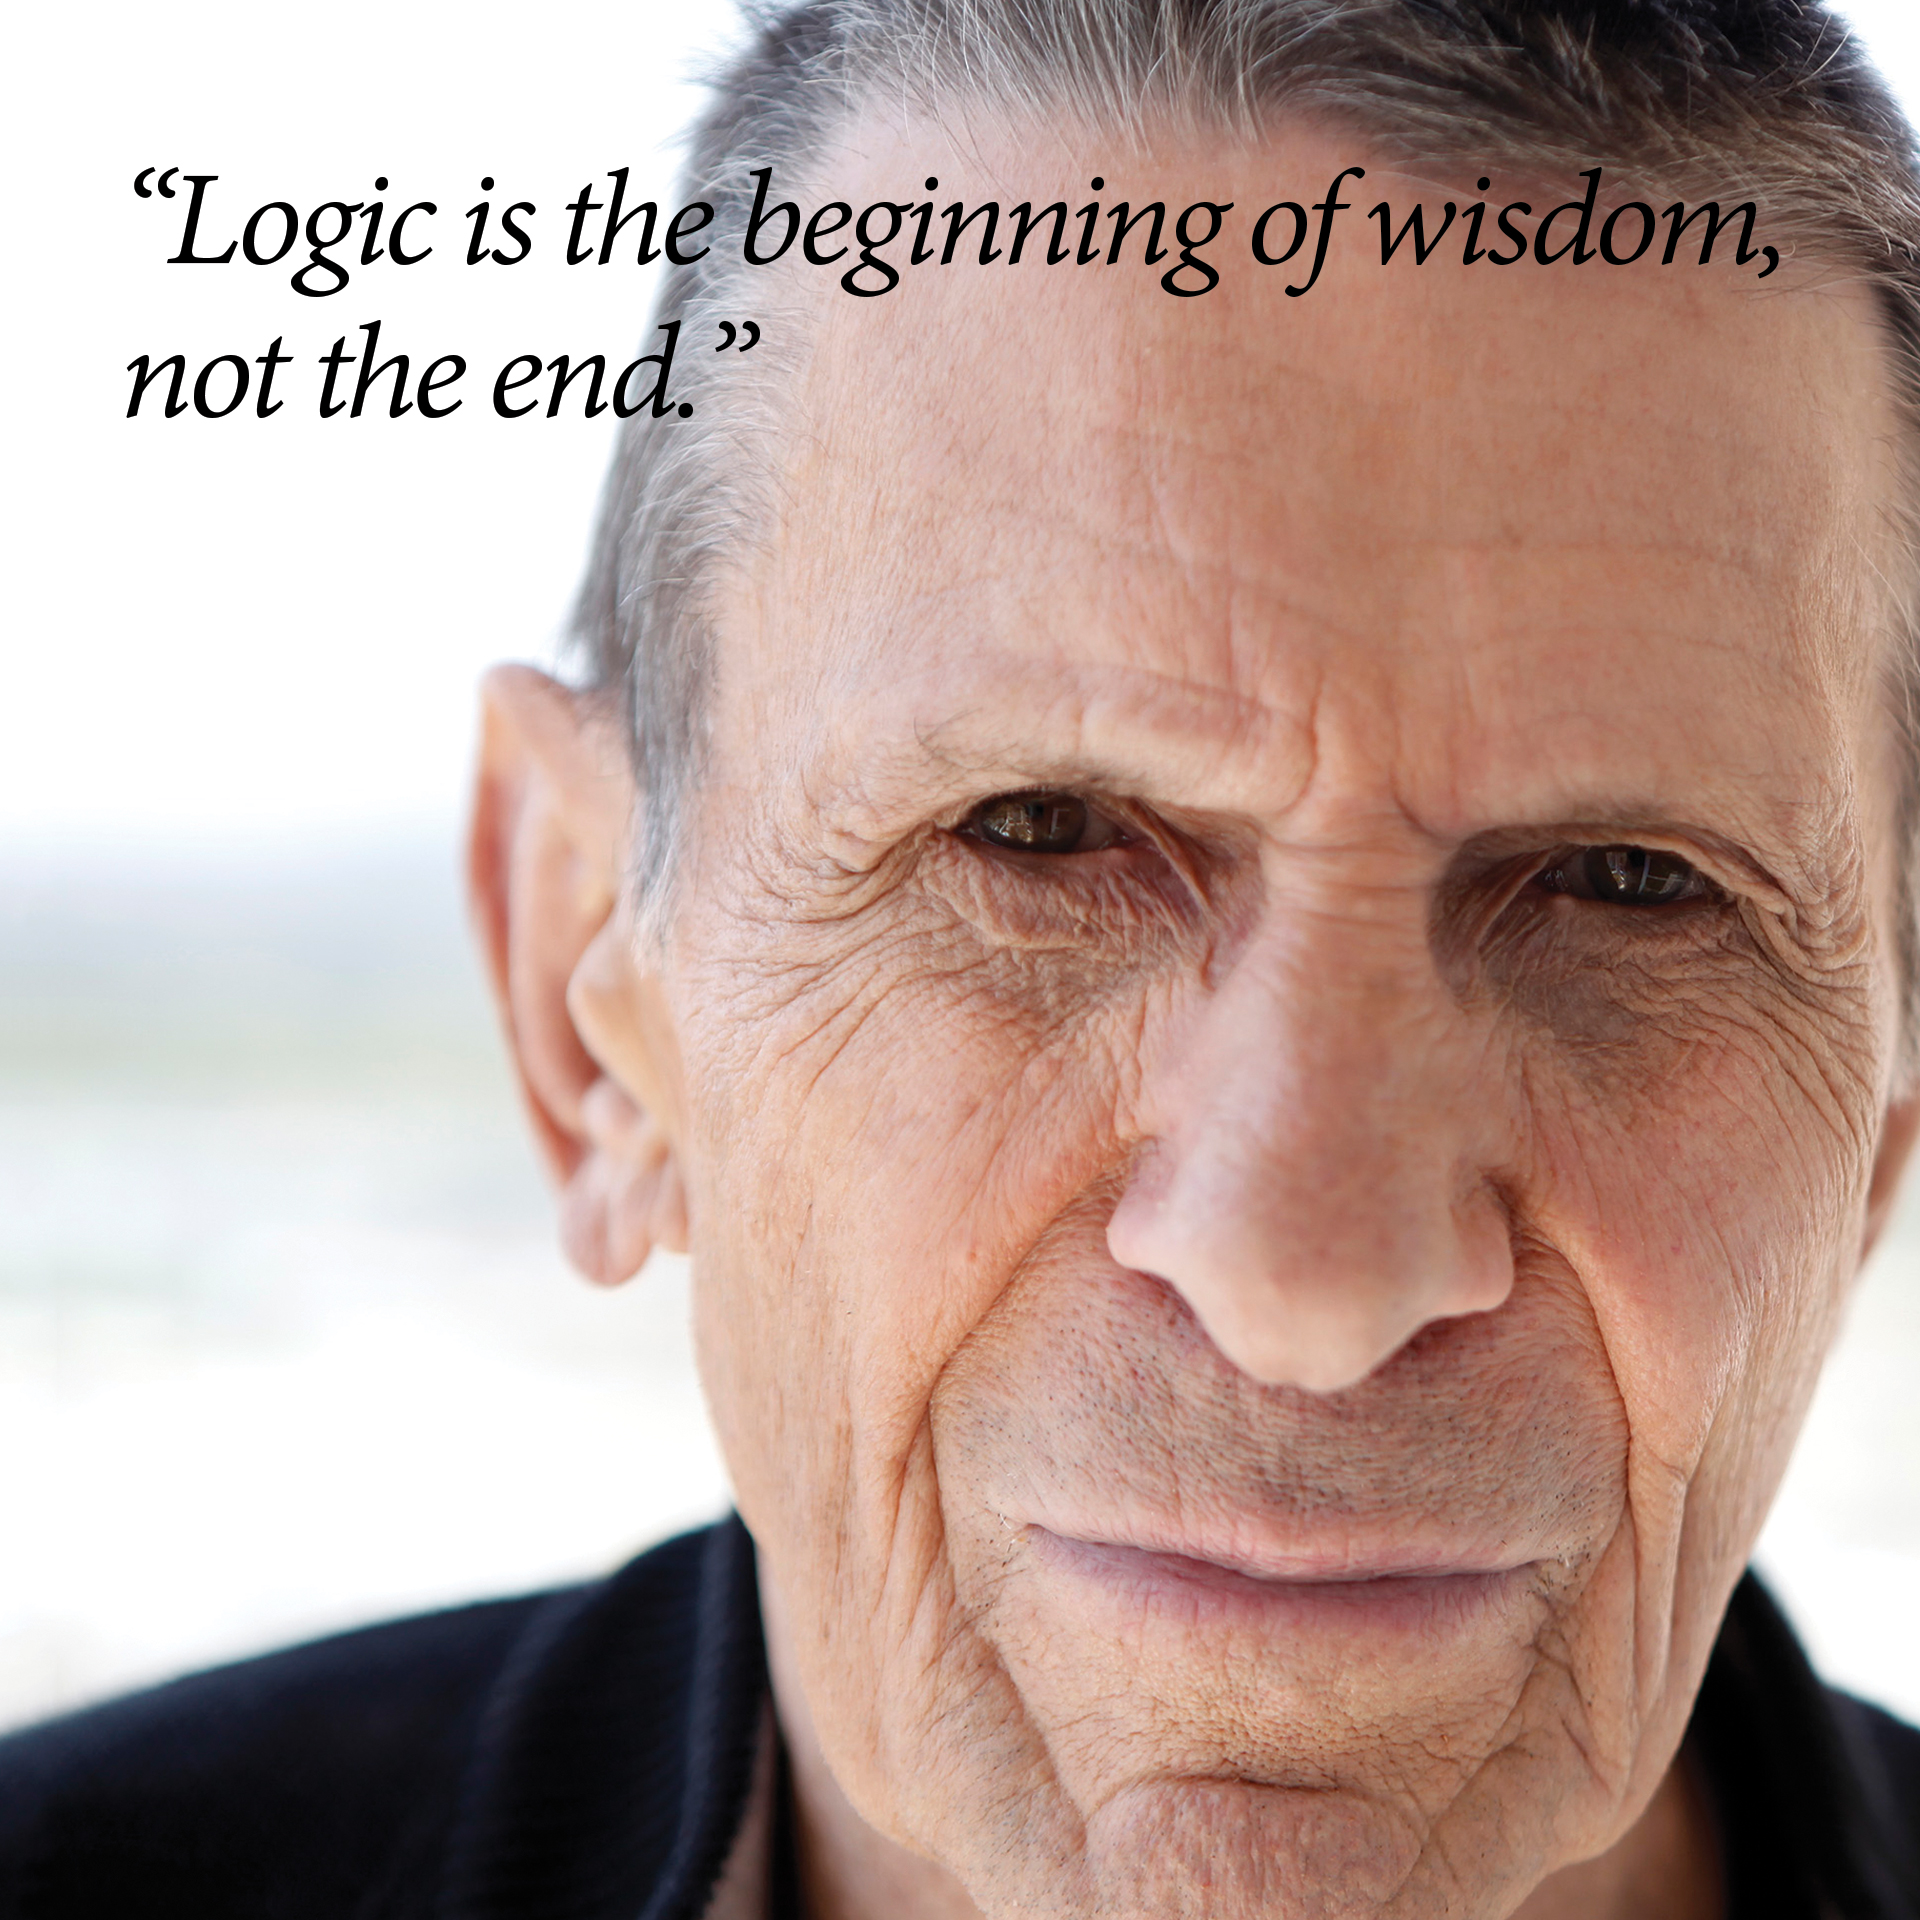 Leonard Nimoy Quotes The Passing Of The Most Human Alien Tribute To Leonard Nimoy